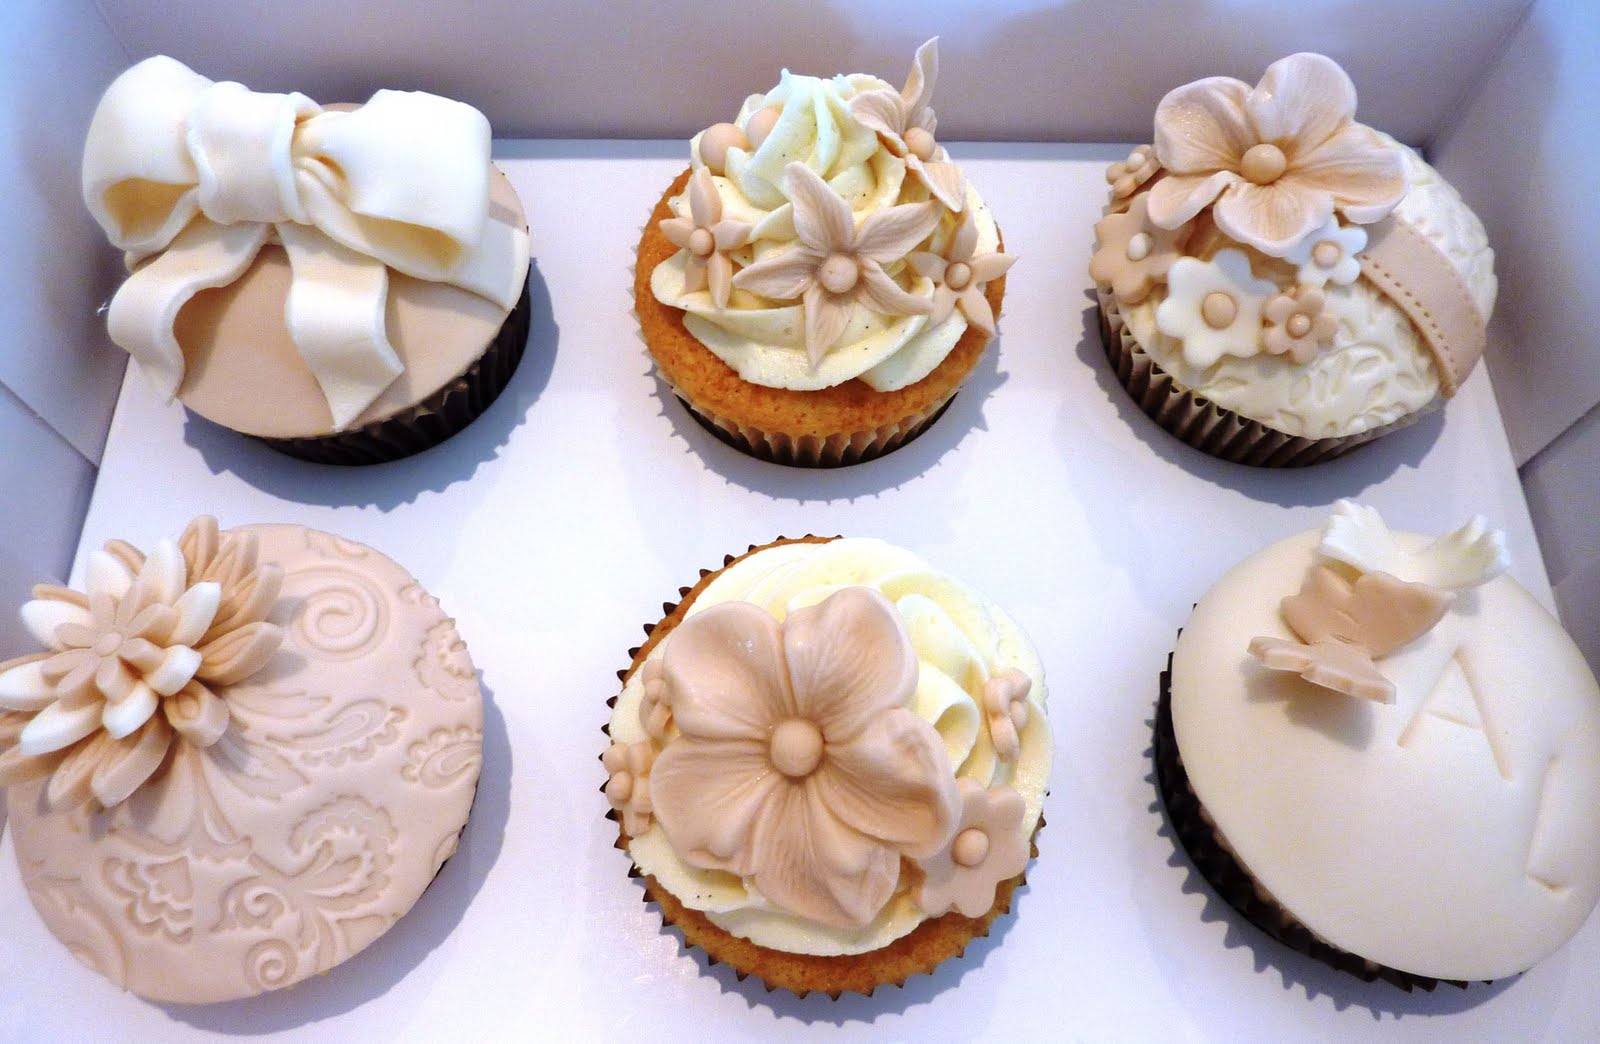 Vanilla Lily Cake Design: Wedding Cupcakes